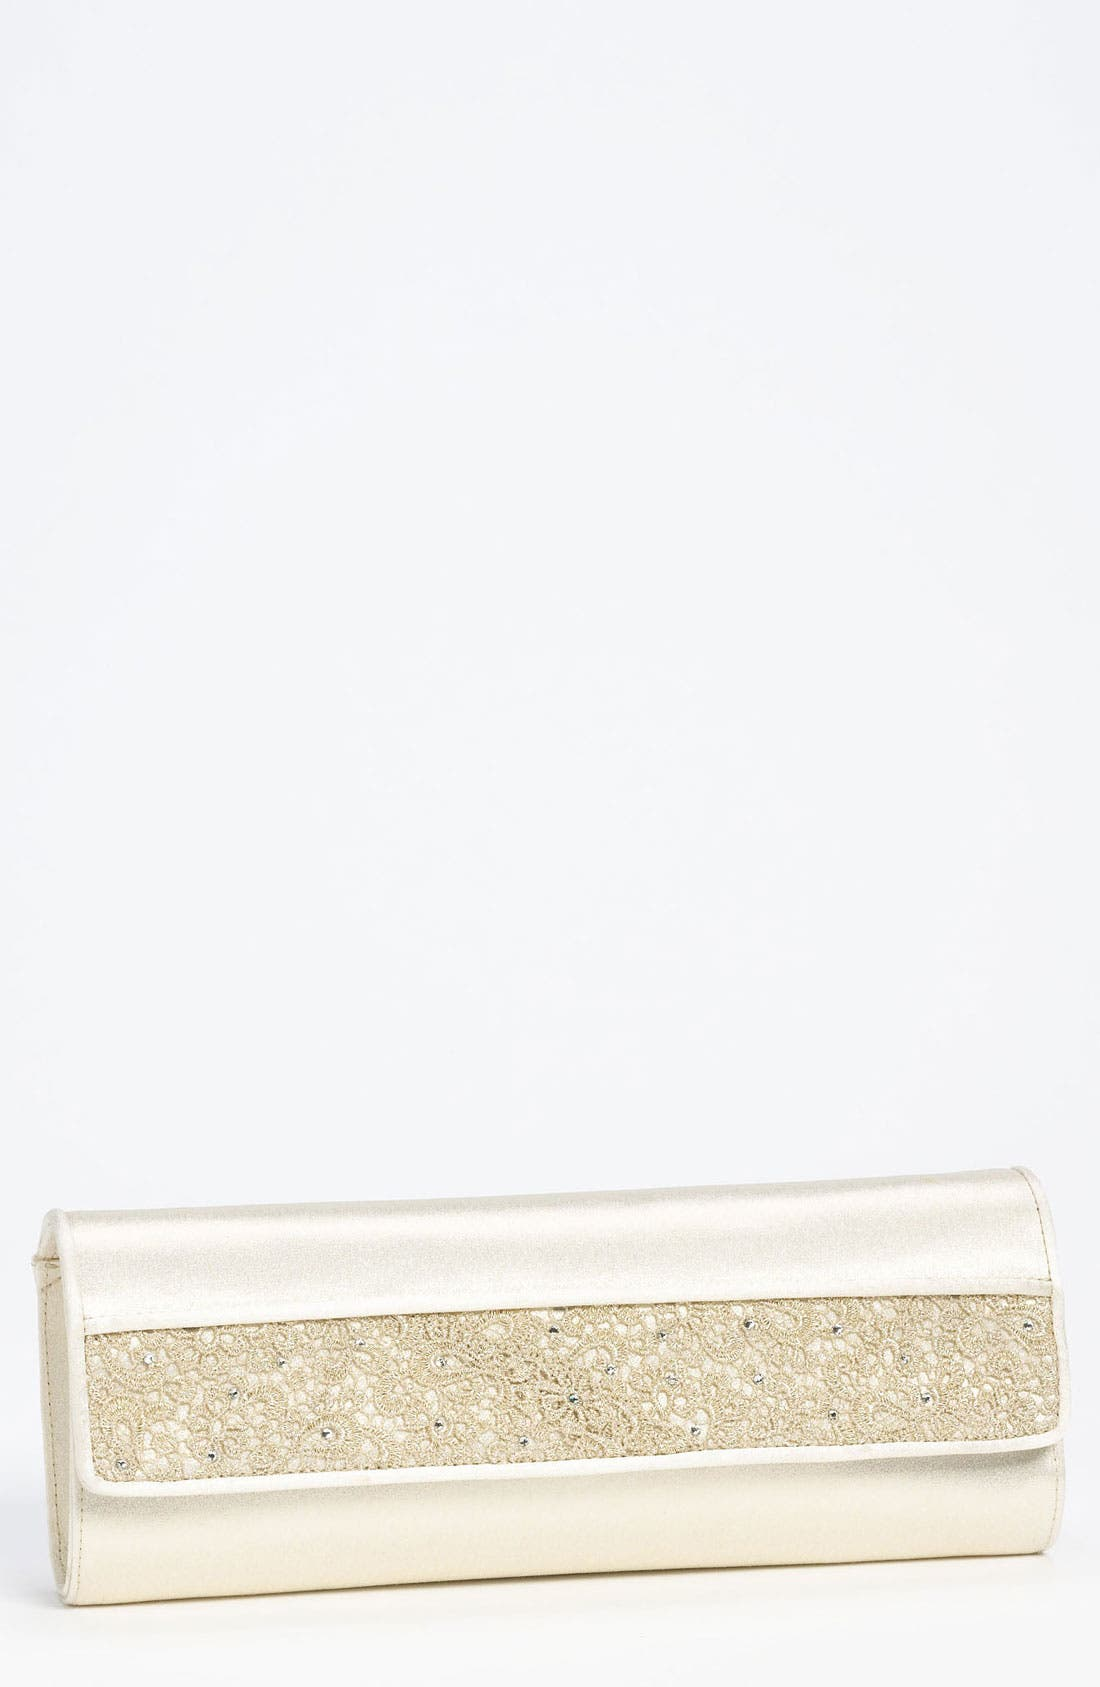 Alternate Image 1 Selected - Stuart Weitzman 'Madamlace' Clutch